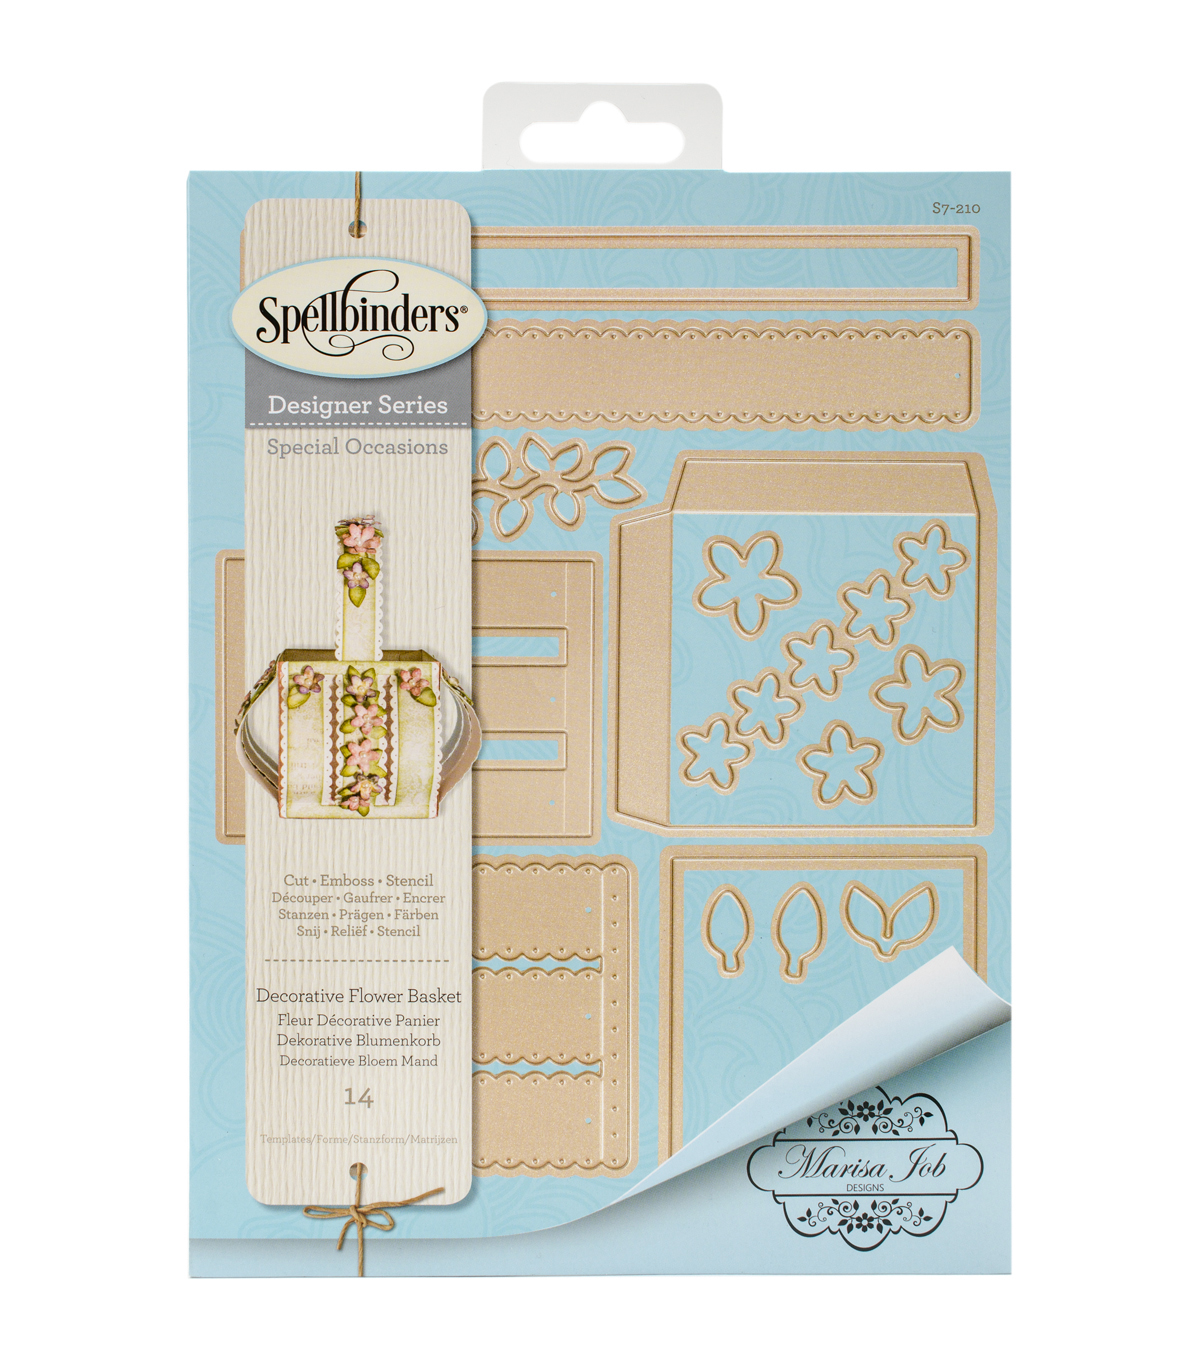 Spellbinders Shapeabilities Die-Decorative Flower Basket